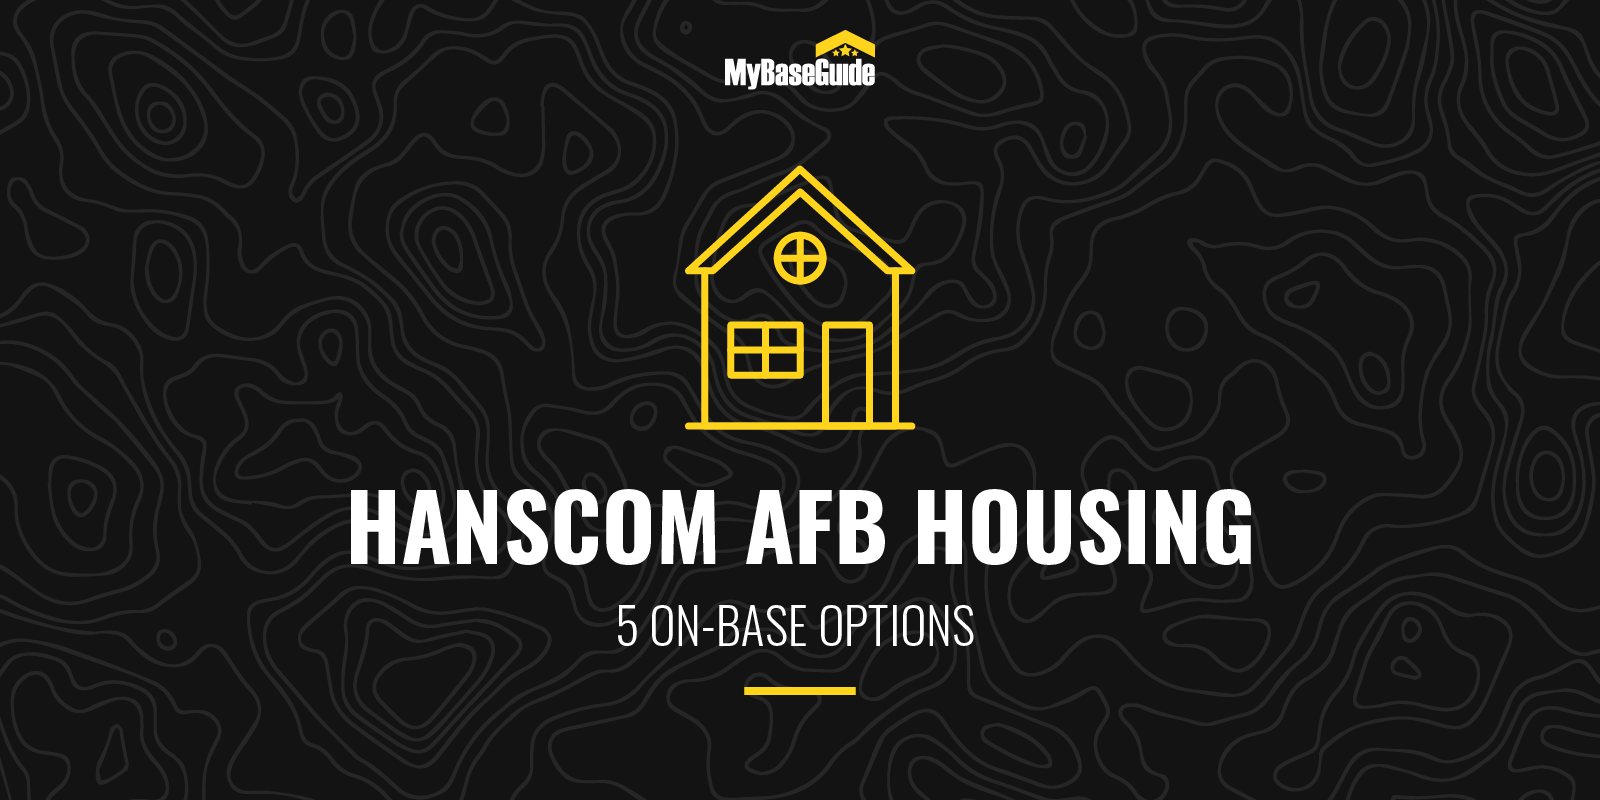 Hanscom AFB Housing: 5 On Base Options